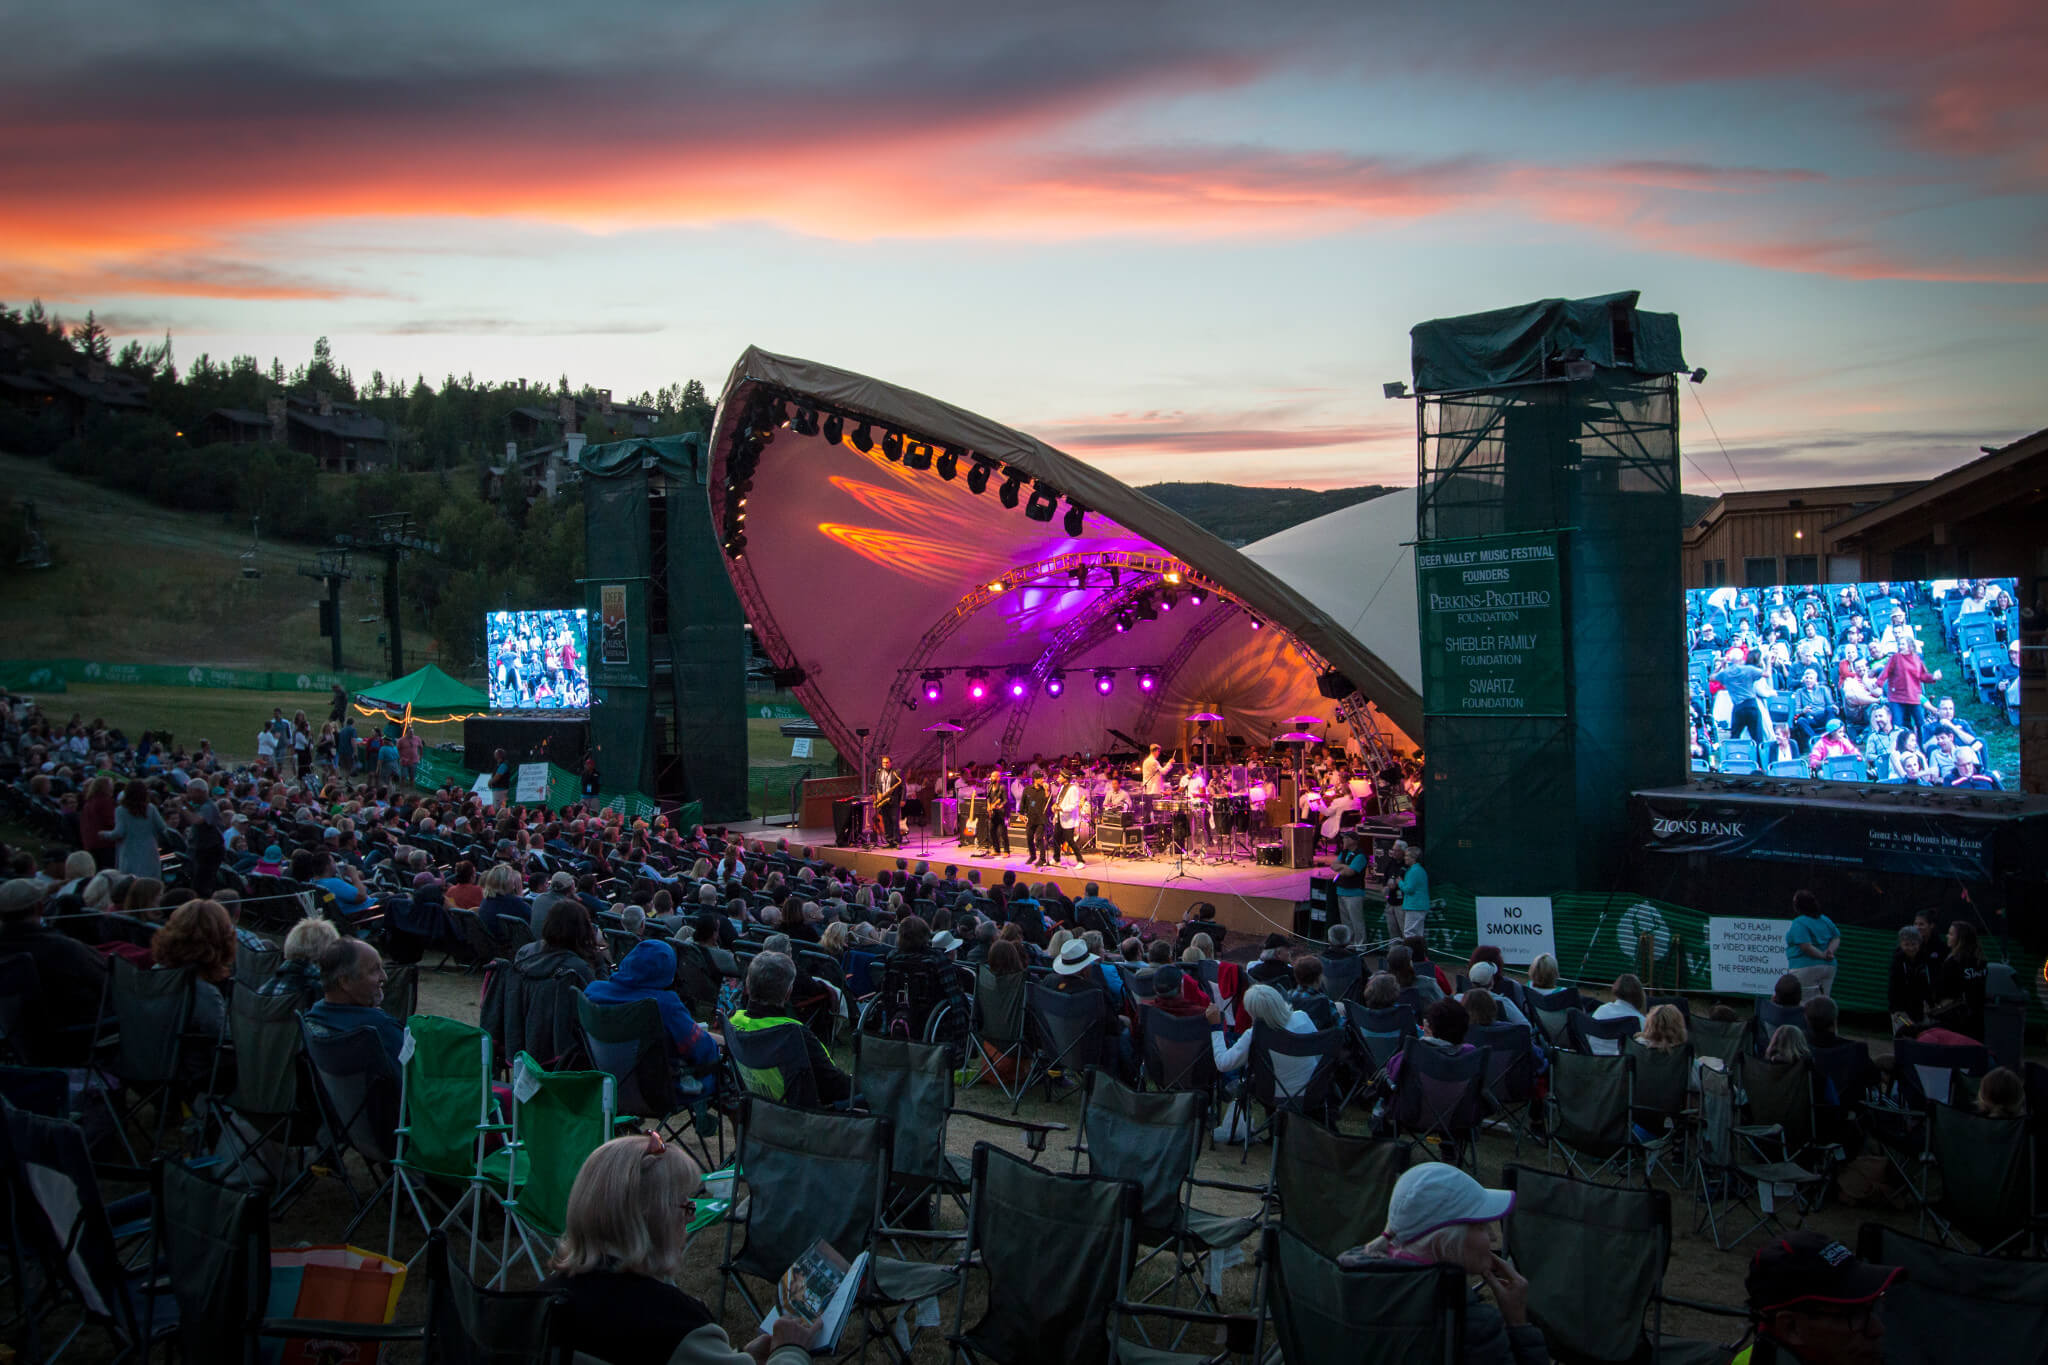 Crowd of people watching a concert at dusk at Deer Valley Resort